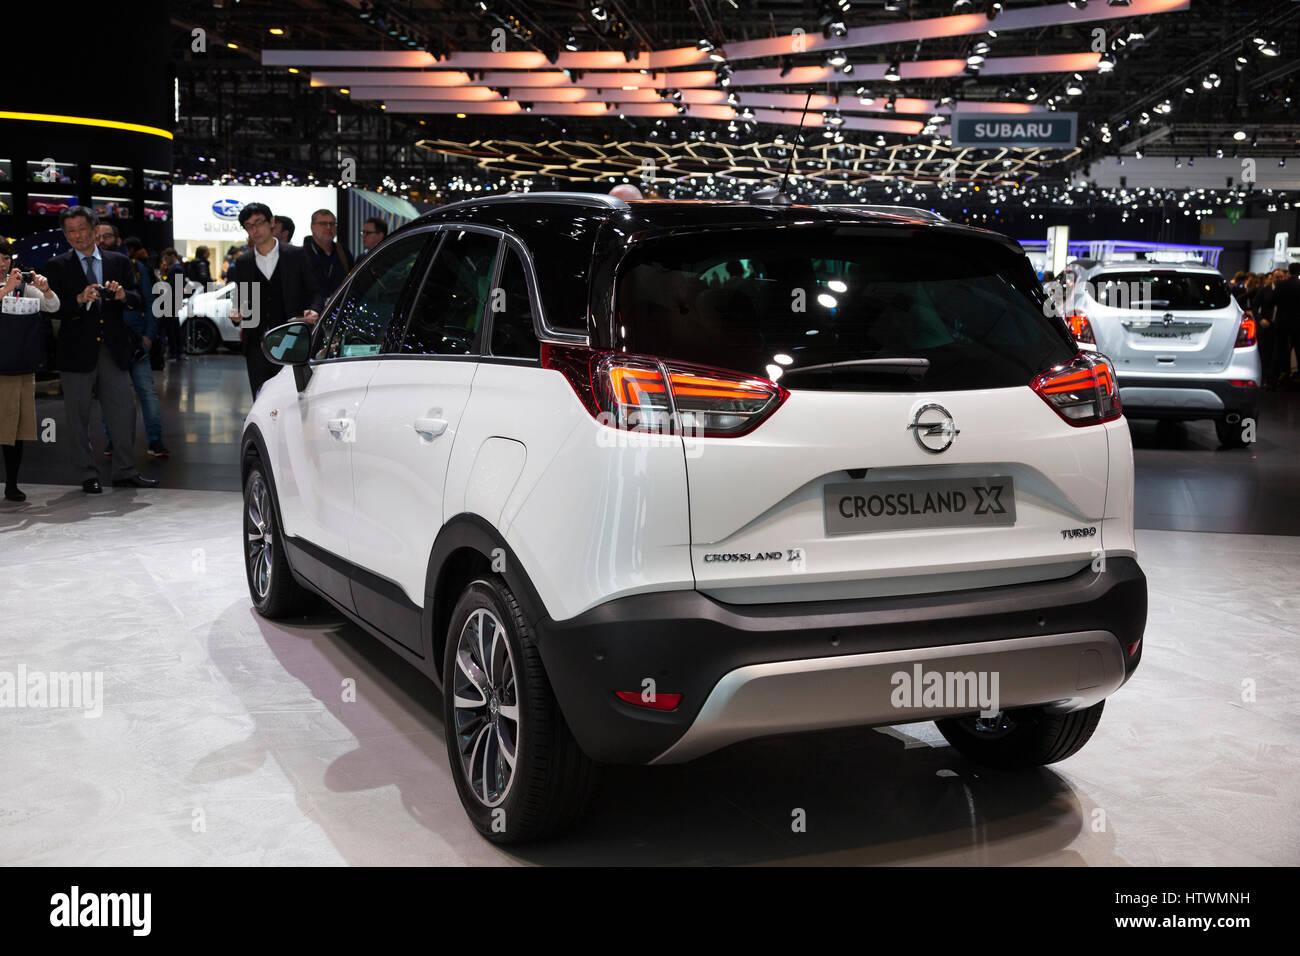 Opal Vauxhall Crossland SUV at the 87th International Geneva Motor Show - Stock Image